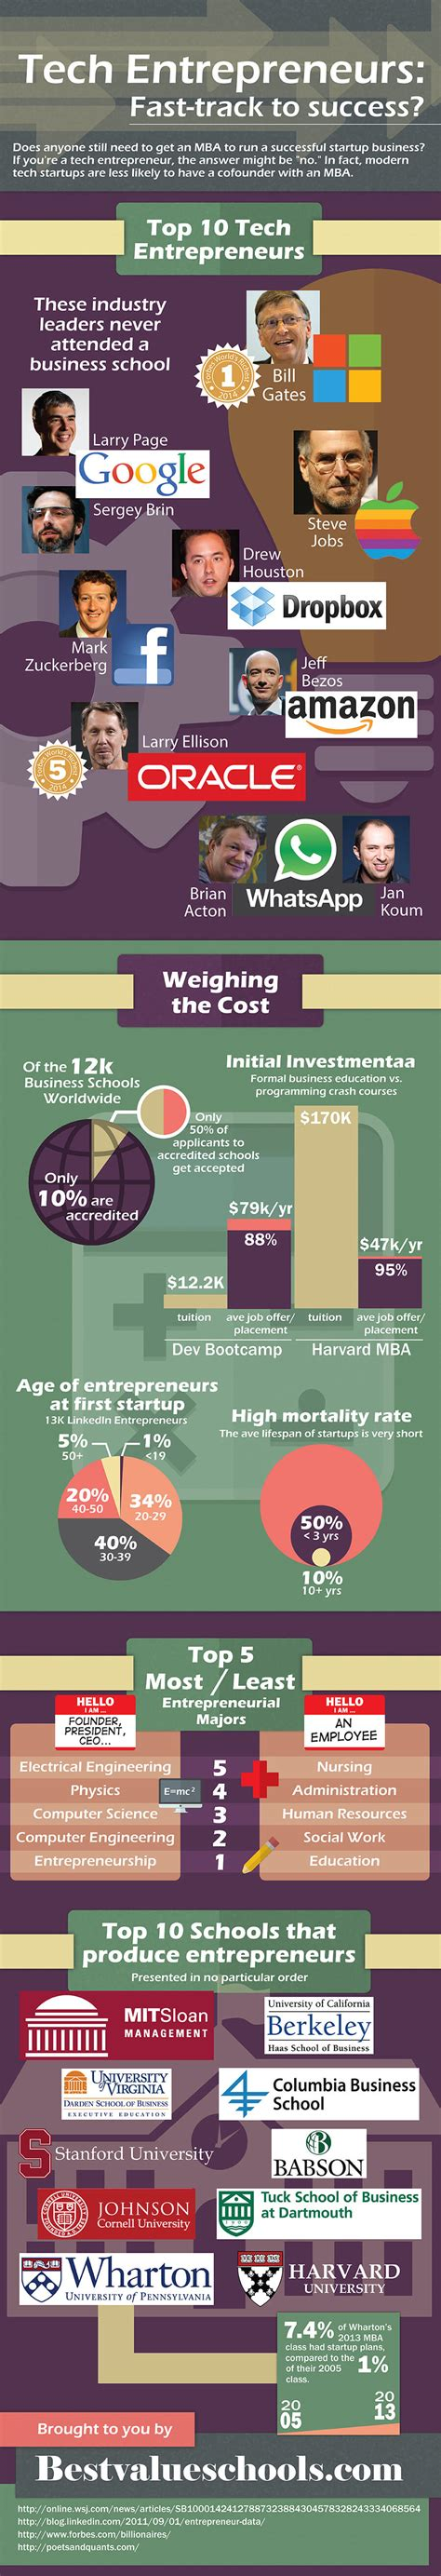 Top Startup Mba by Do You Really Need An Mba To Launch A Tech Startup Best